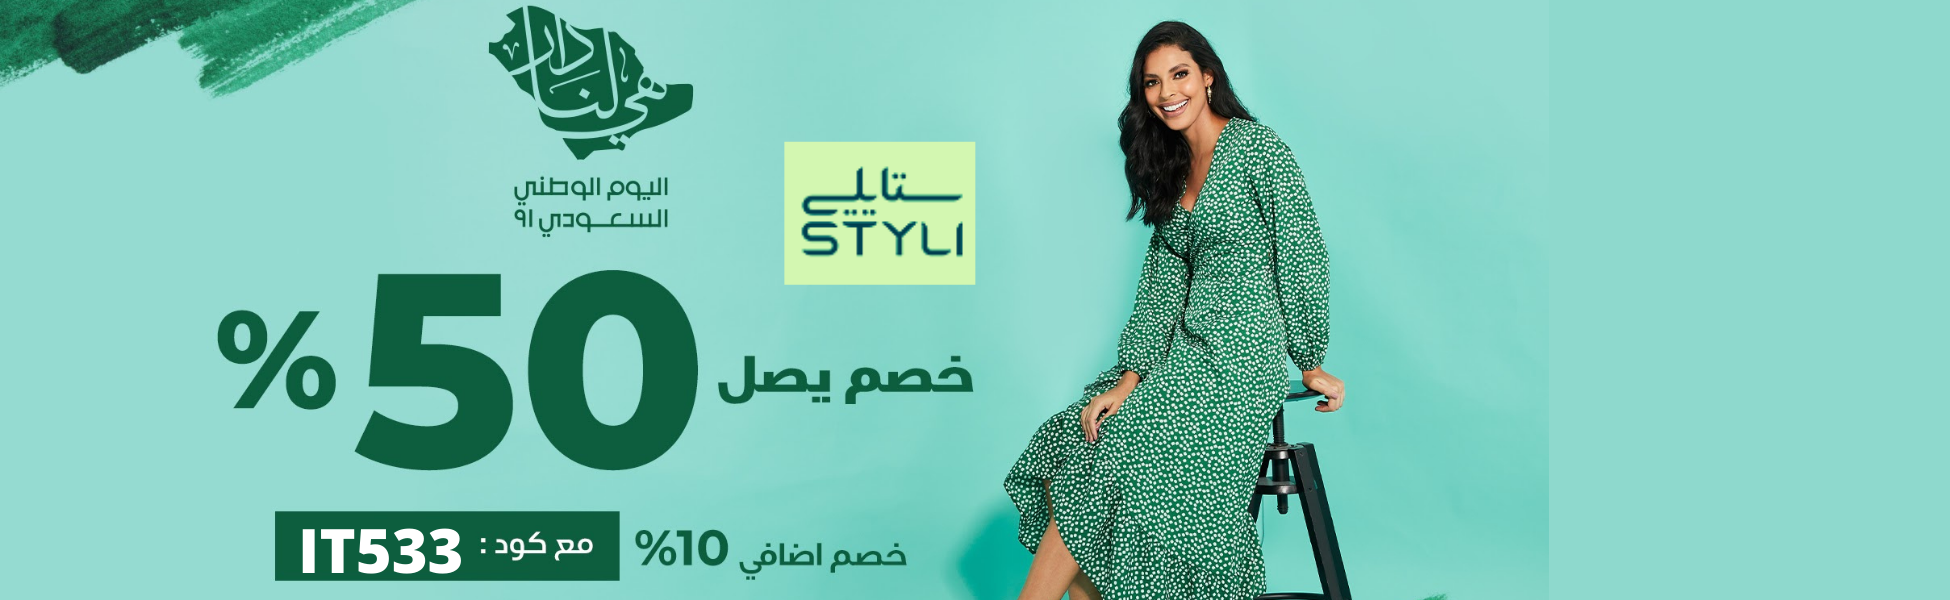 Styli Saudi National Day Deal   40% - 50% OFF